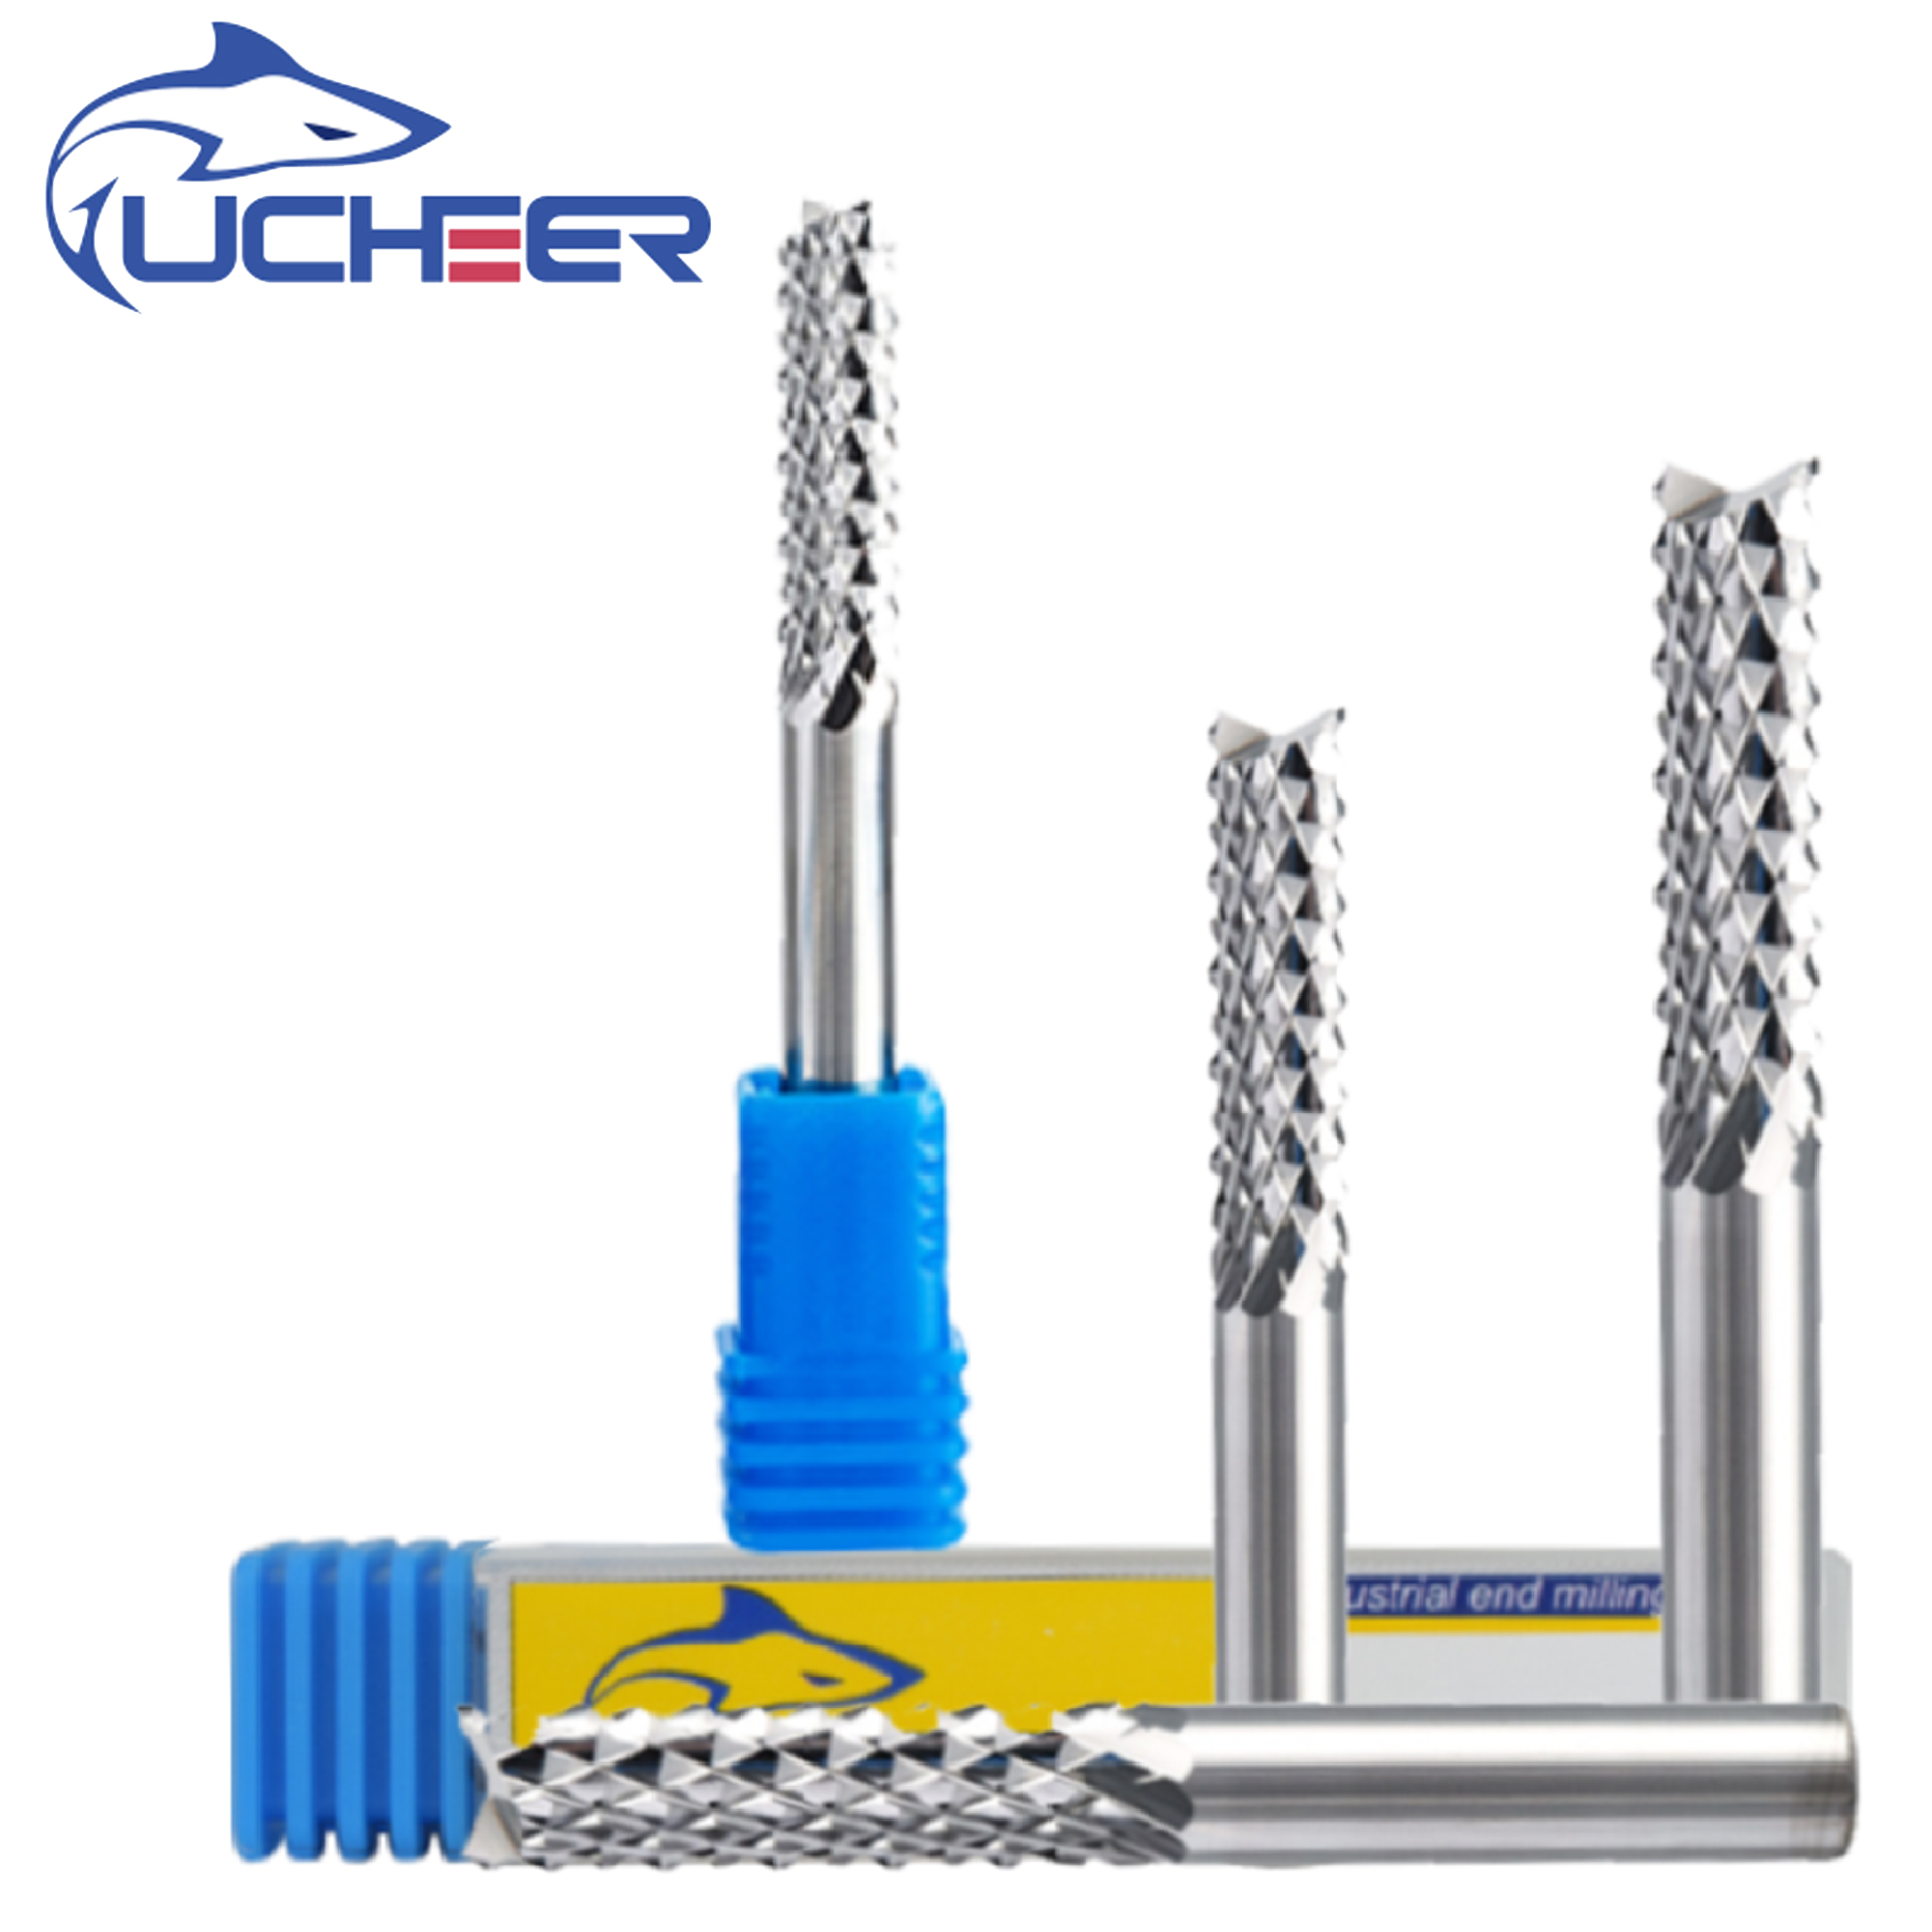 UCHEER  3.175/4/6mm Carbide Tungsten PCB Corn Teeth Cutter Milling Bits Cnc End Mill CNC Router Bits For Engraving Machine